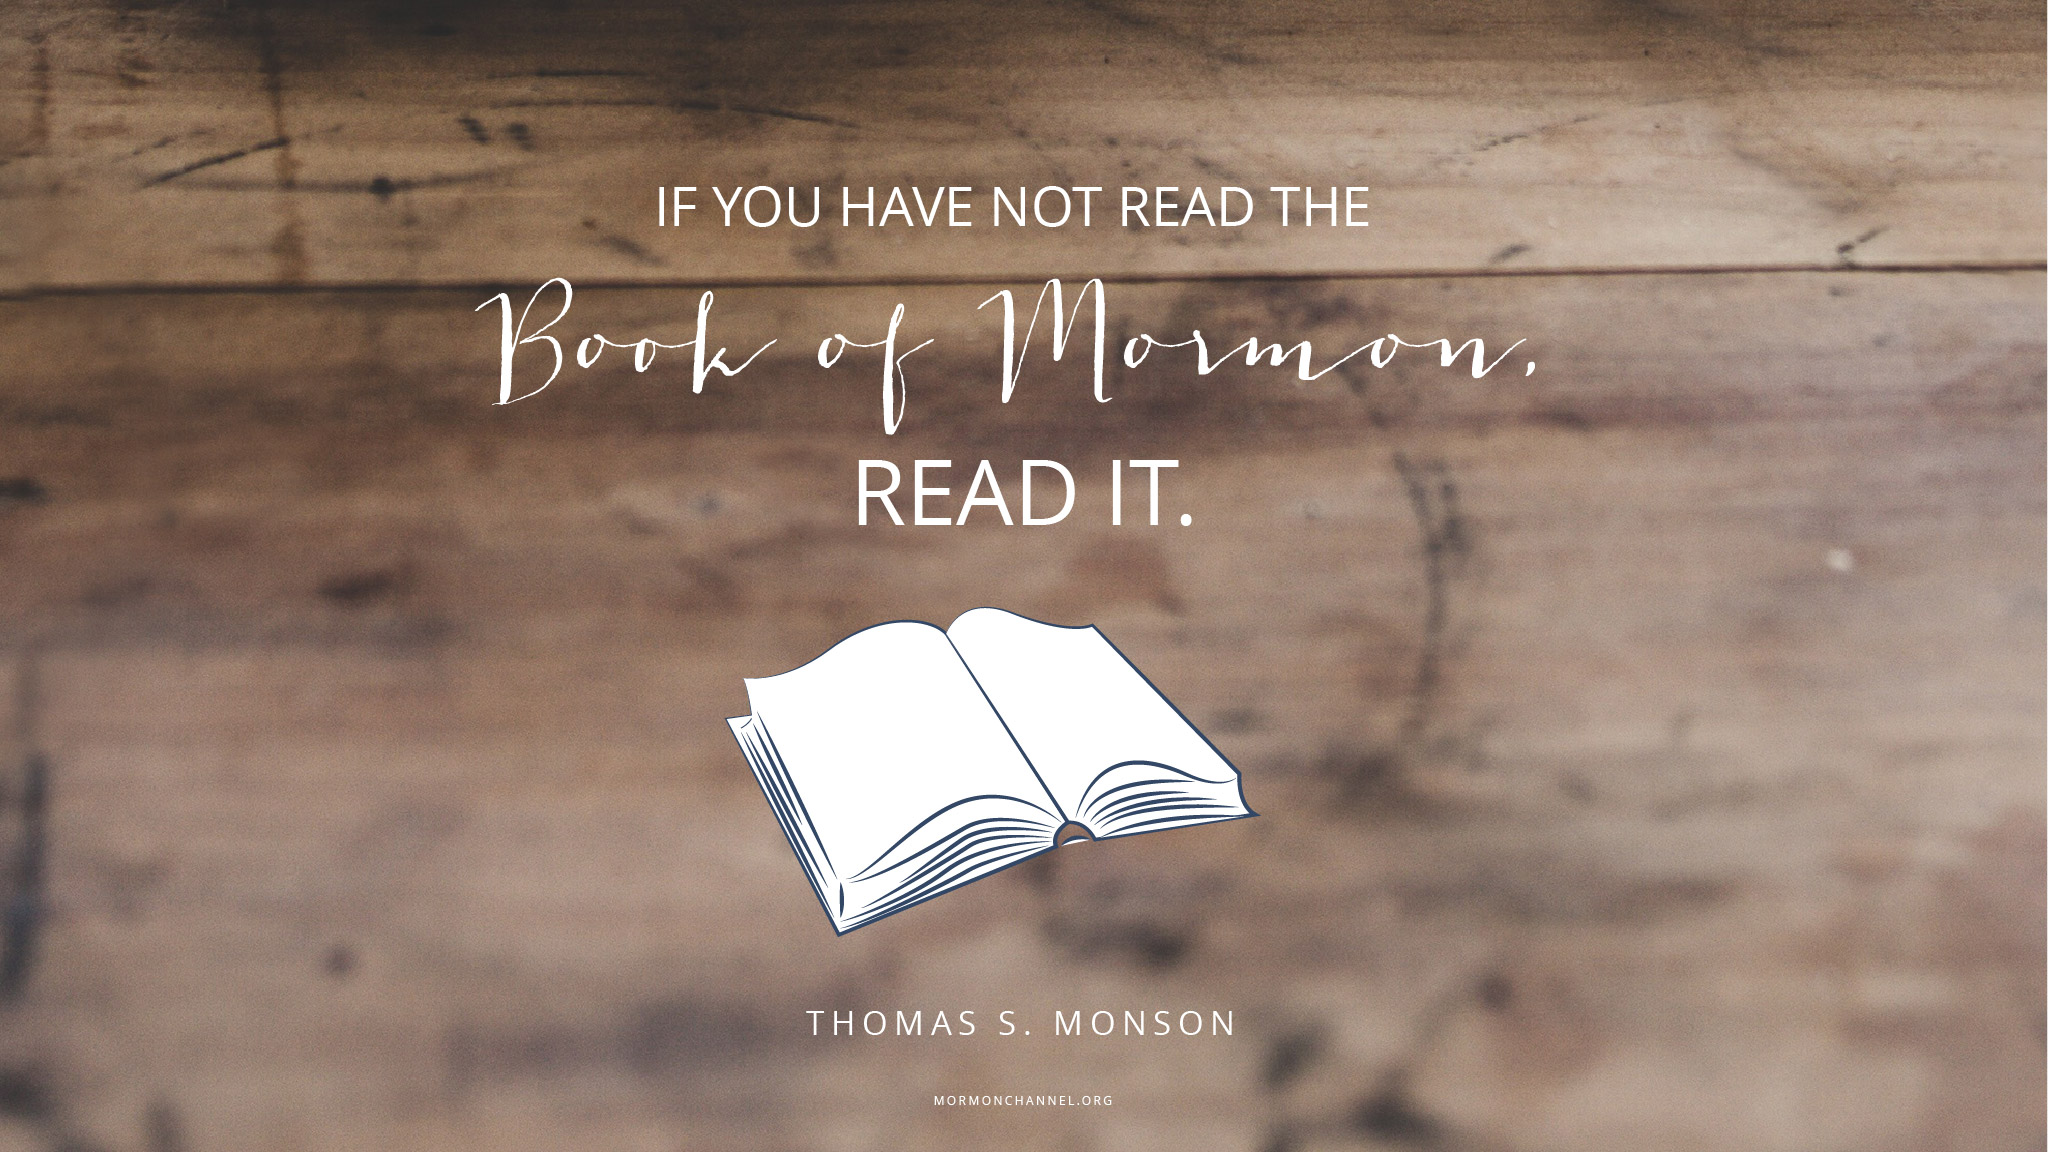 Book Of Mormon Quotes Daily Quote Book Of Mormon  Mormon Channel